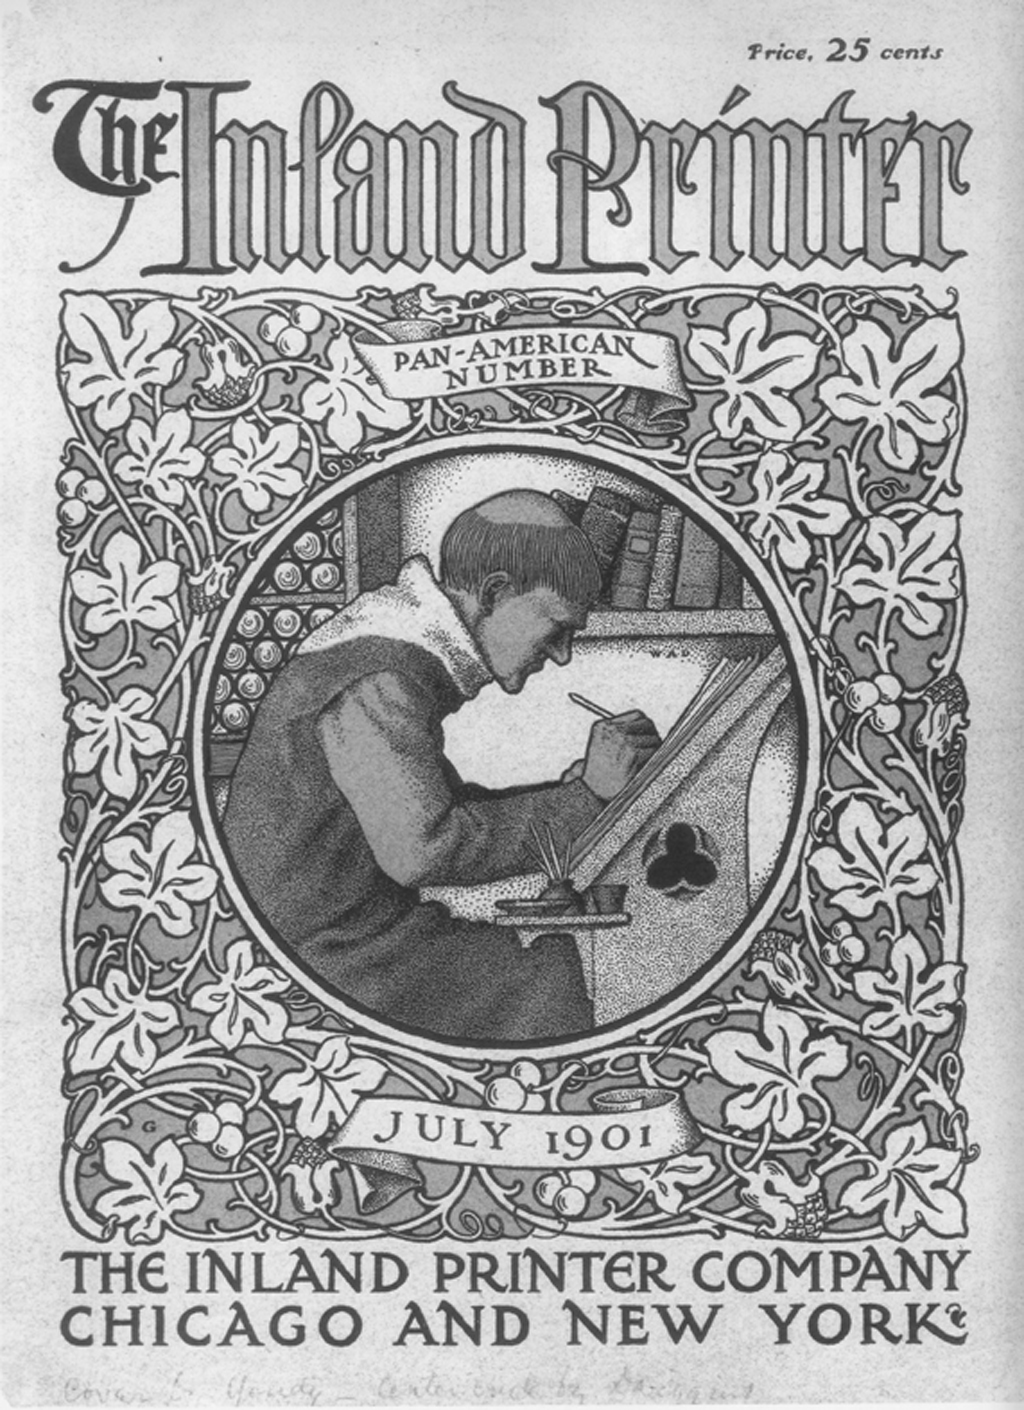 Cover of the Pan-American Issue of The Inland Printer (July 1901) designed jointly by Frederic W. Goudy and W.A. Dwiggins.